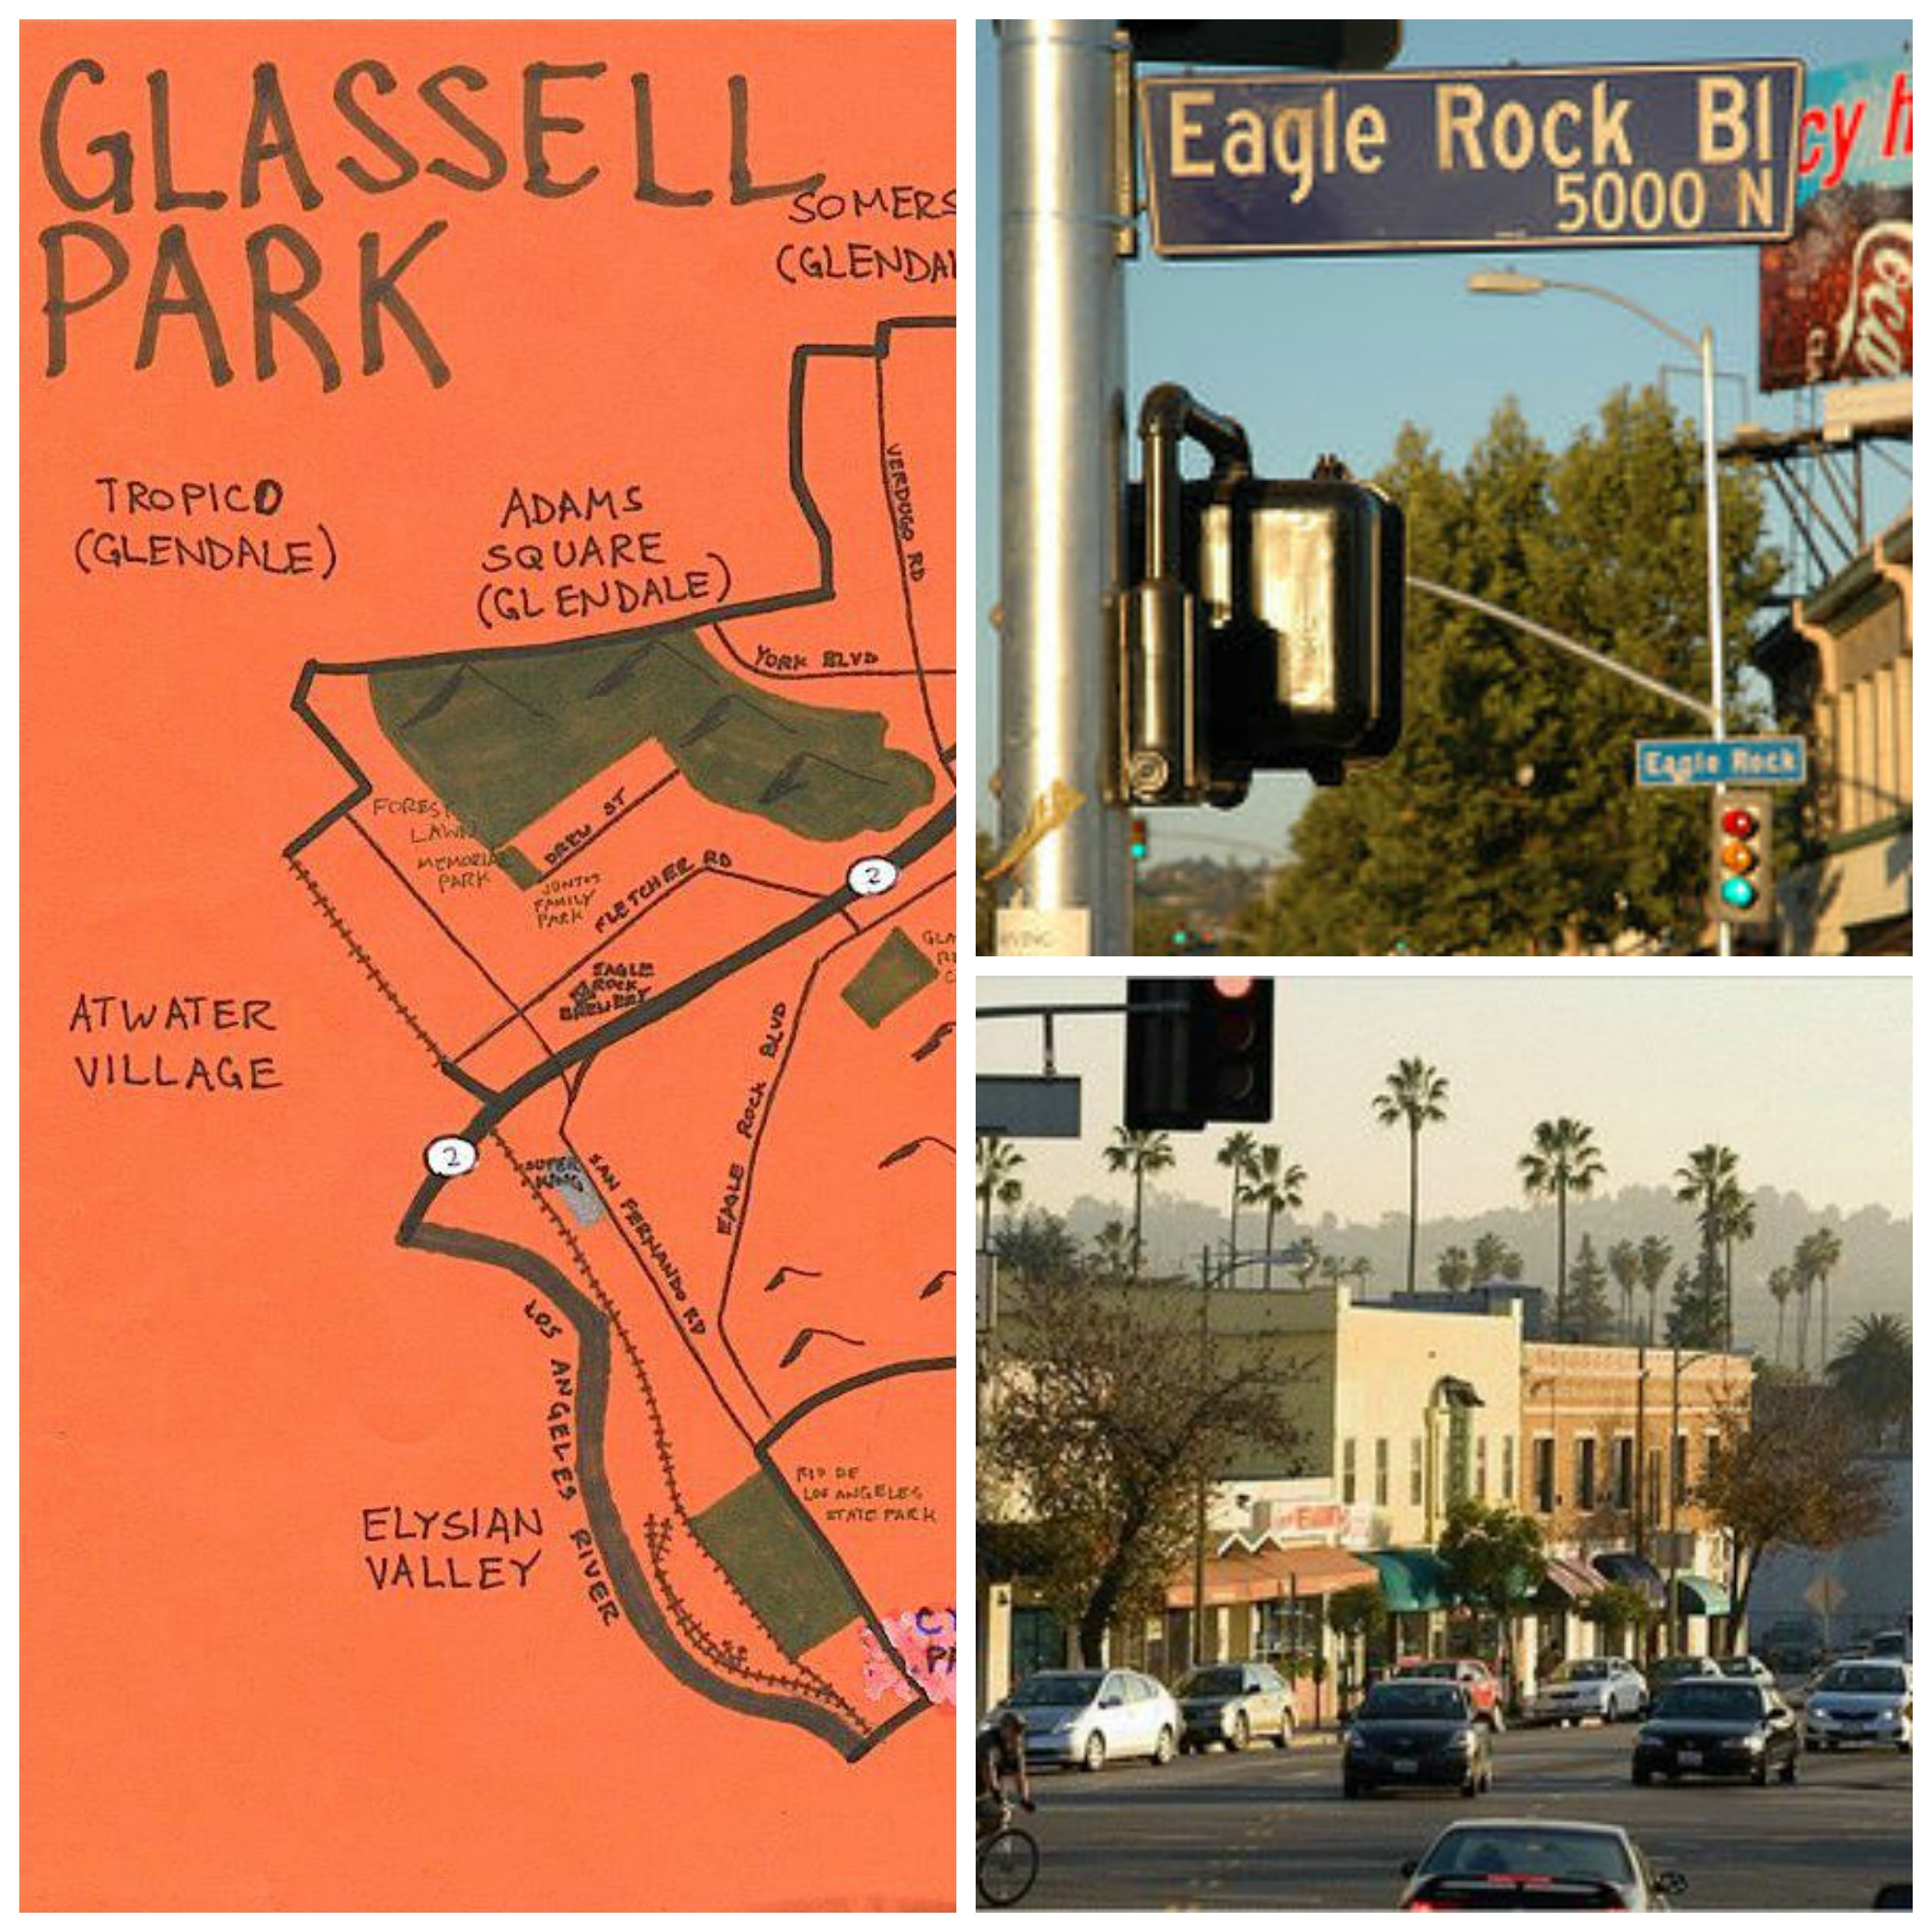 GP-collage-1-EagleRock.jpg